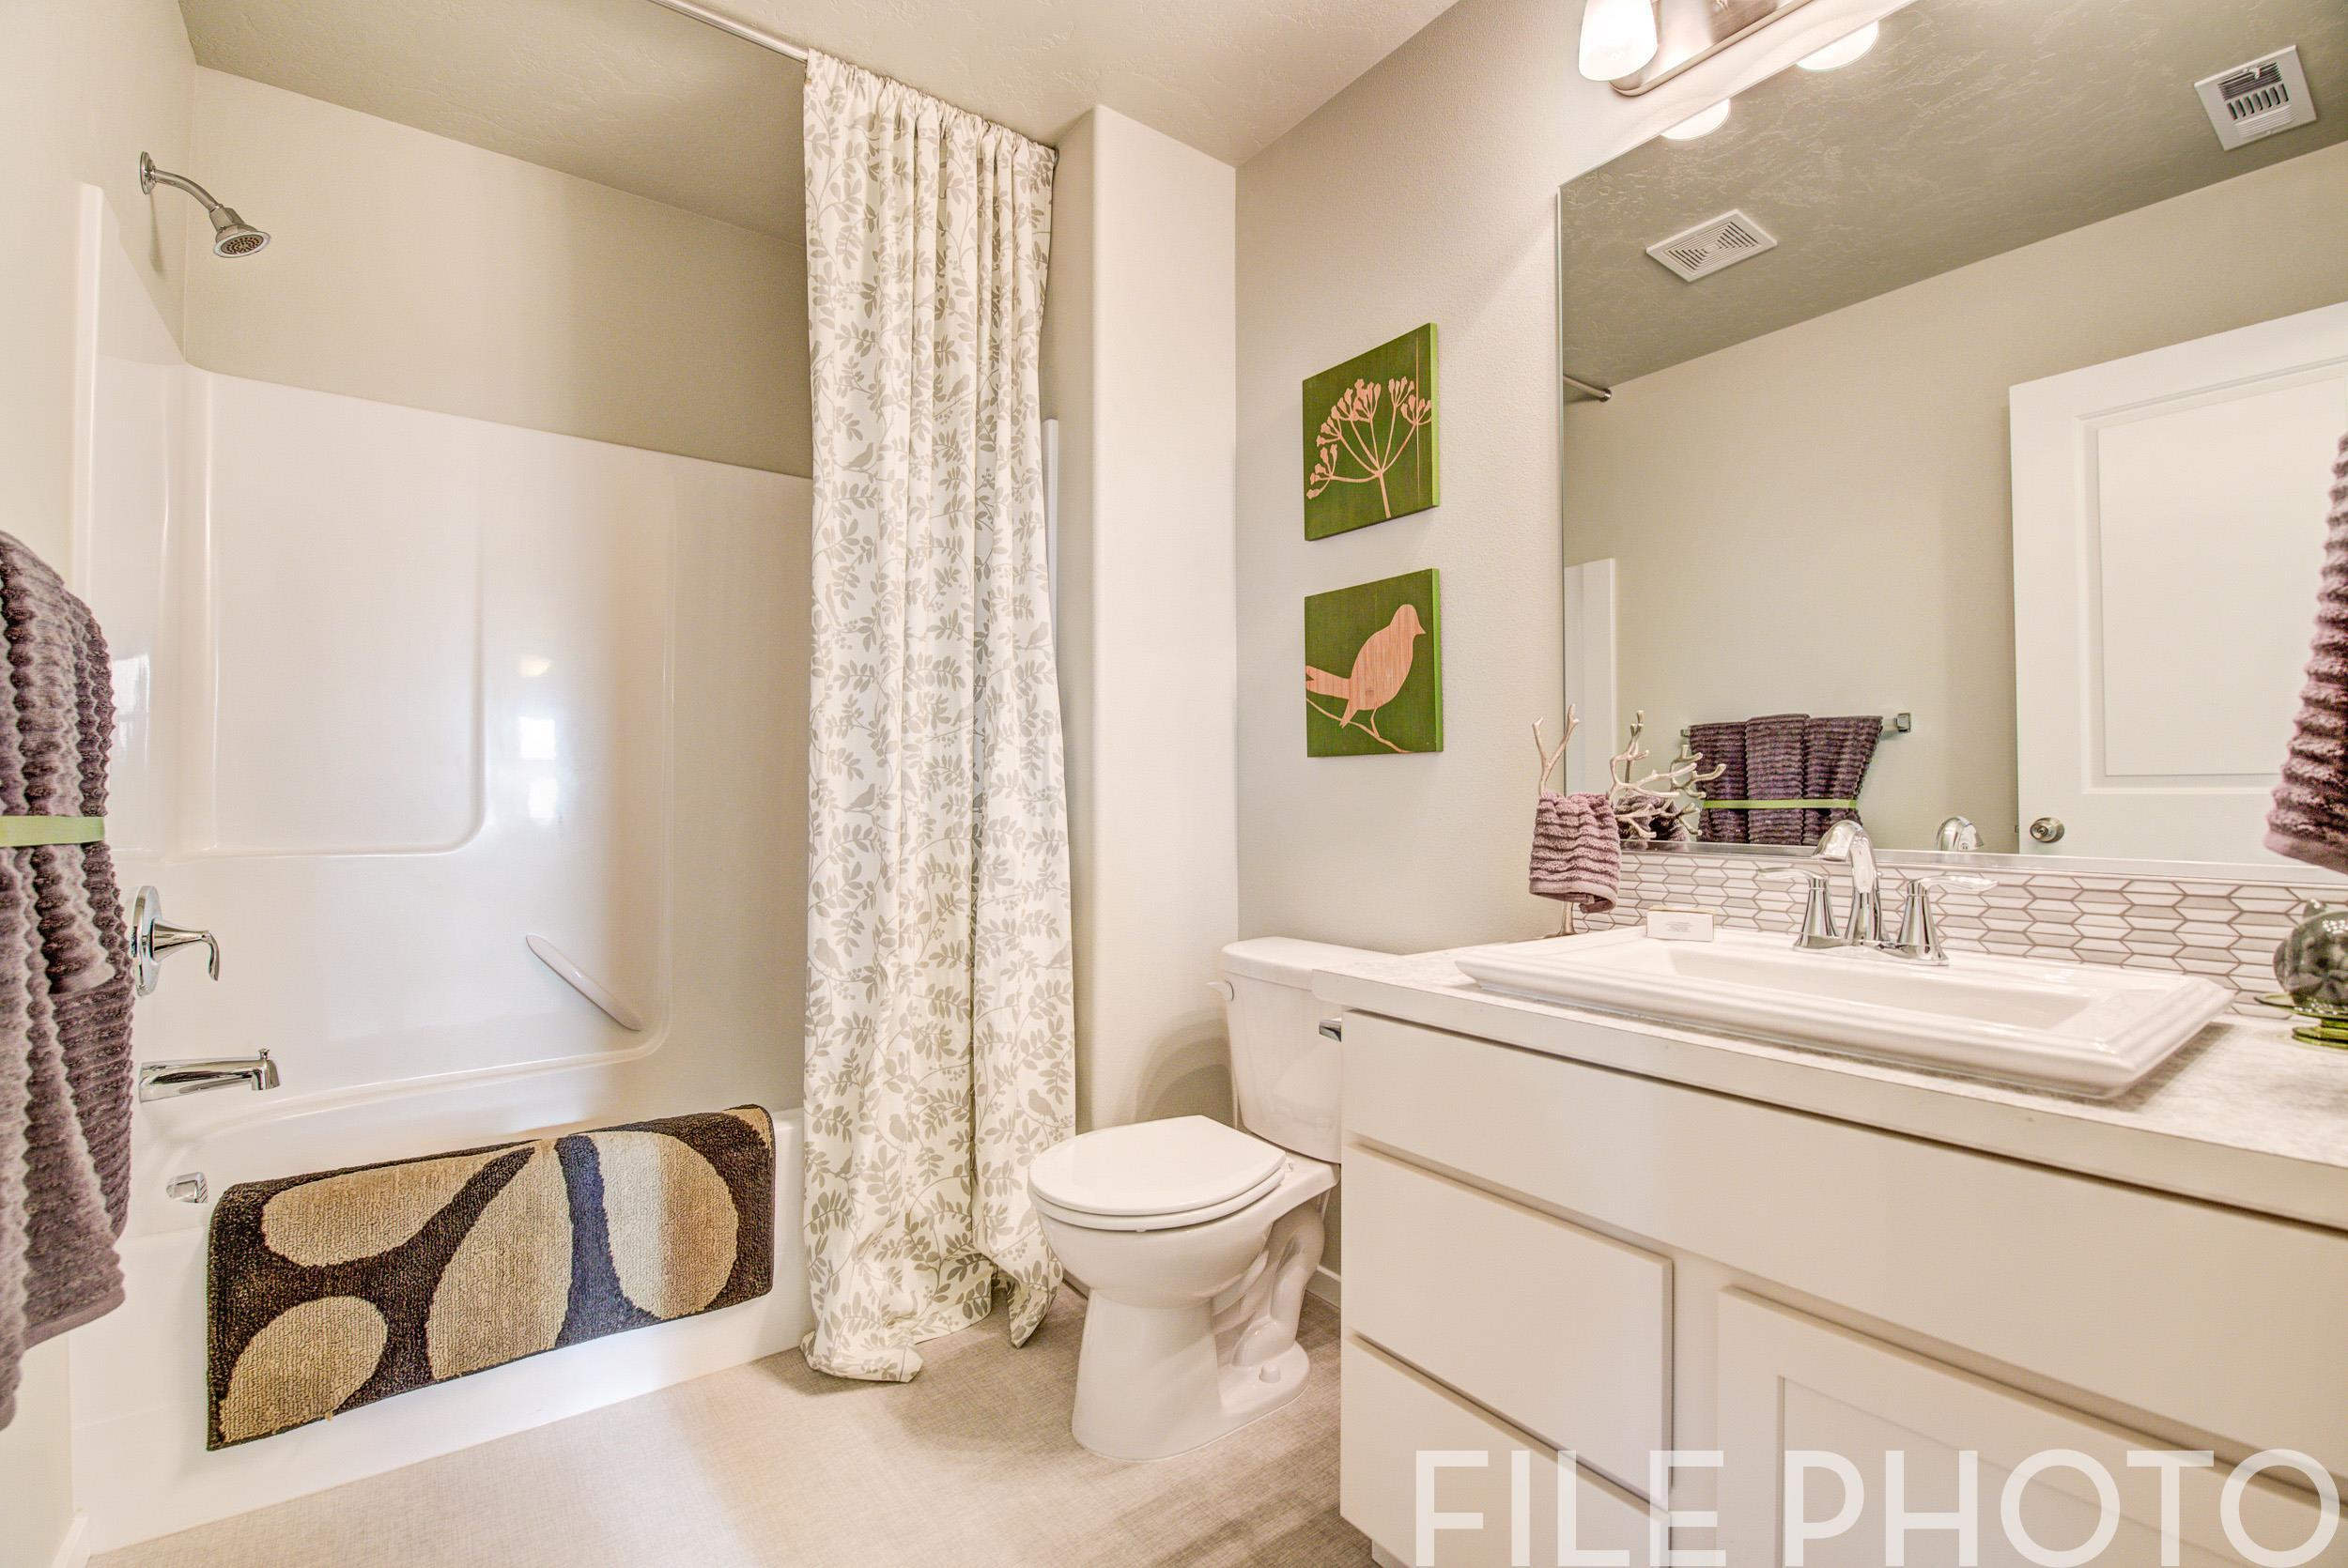 Bathroom featured in The Whistler By RYN Built Homes in Richland, WA